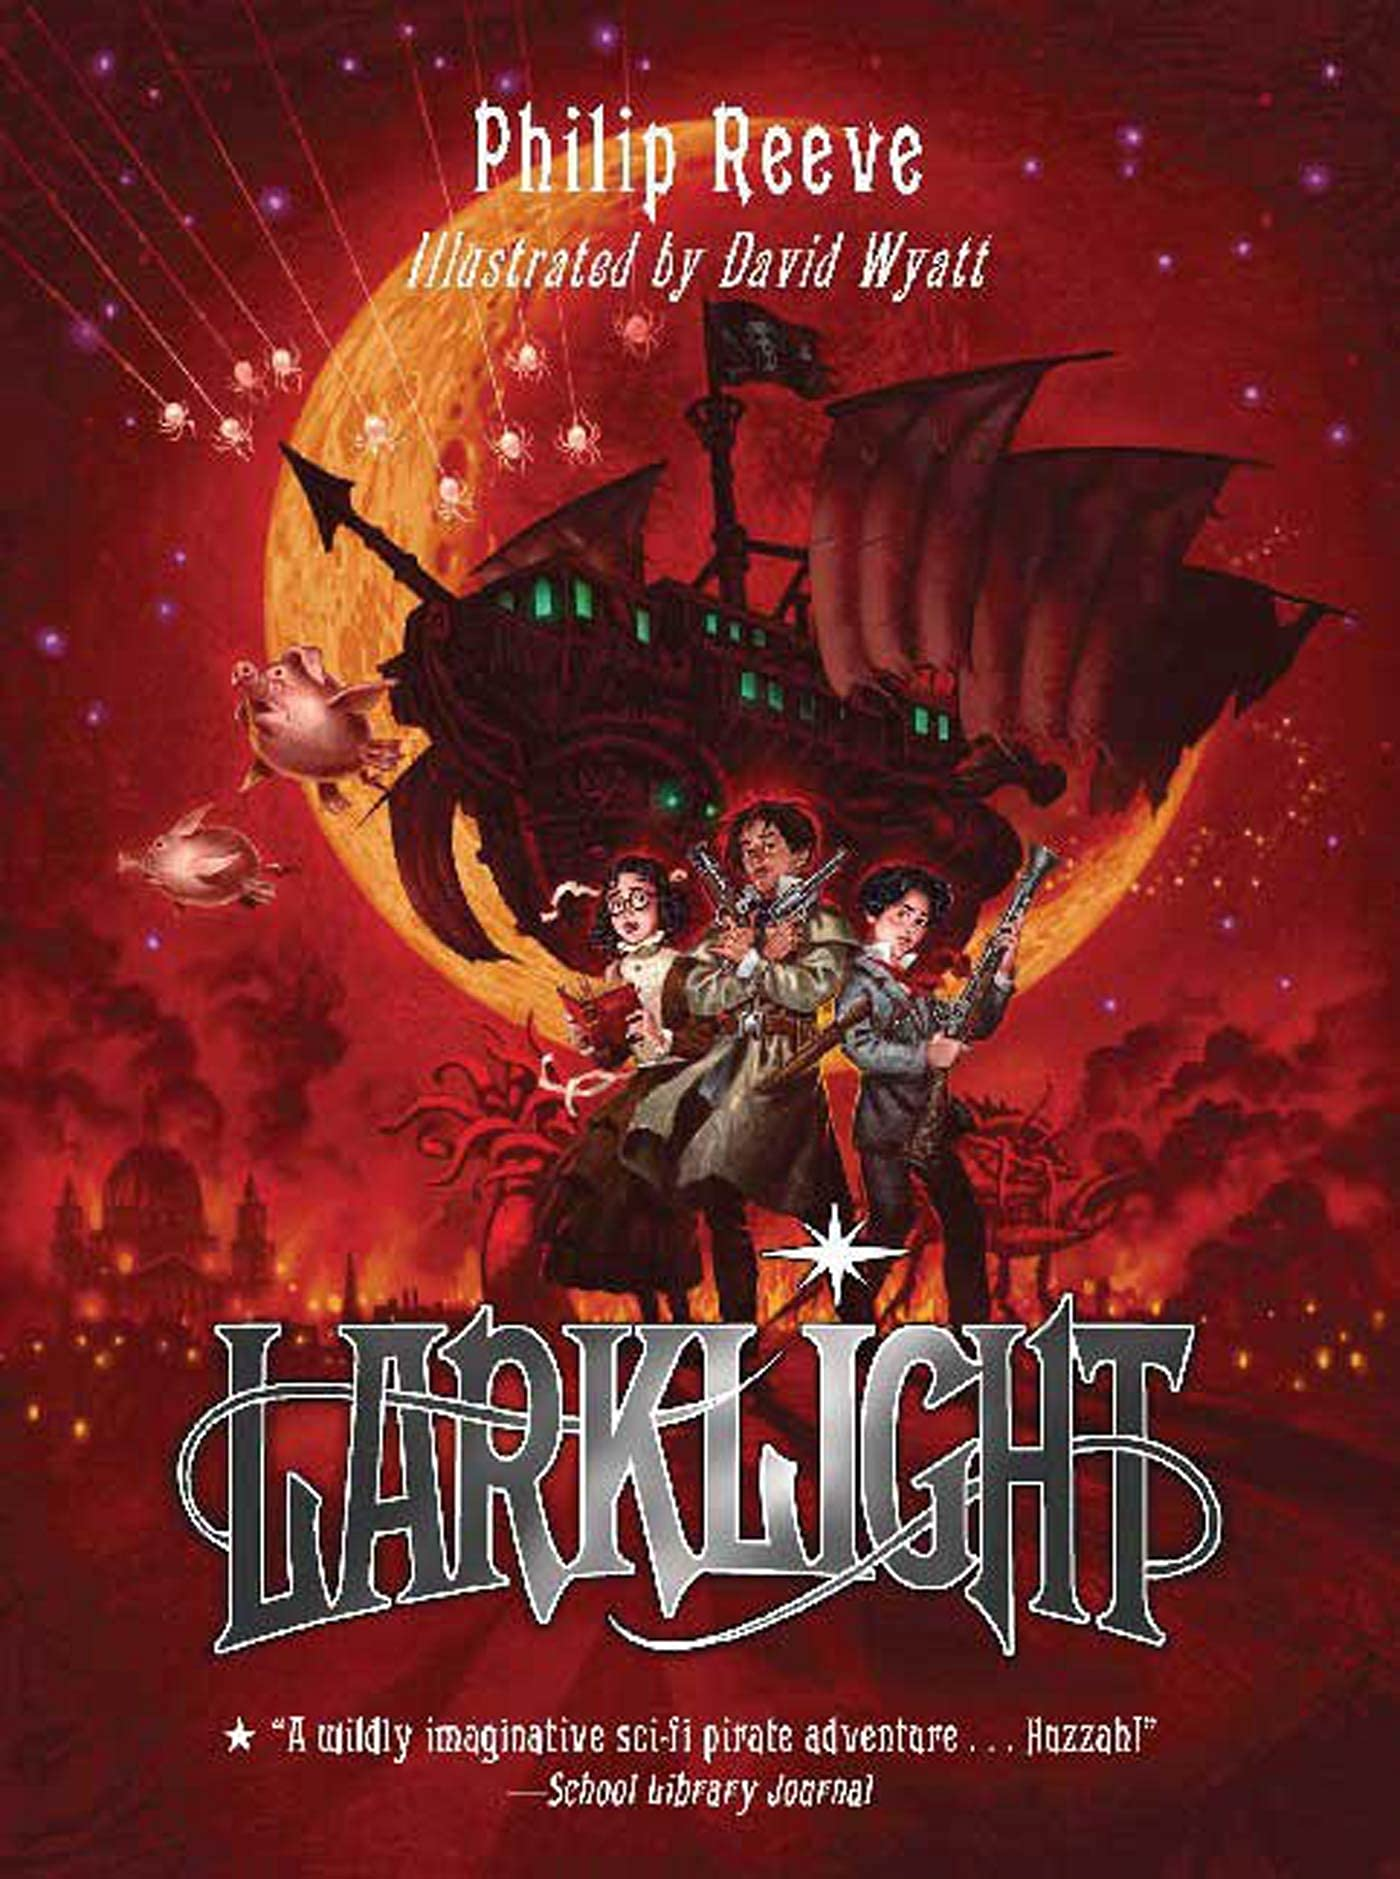 Larklight: A Rousing Tale of Dauntless Pluck in the Farthest Reaches of  Space: Reeve, Philip, Wyatt, David: 9781599901459: Amazon.com: Books